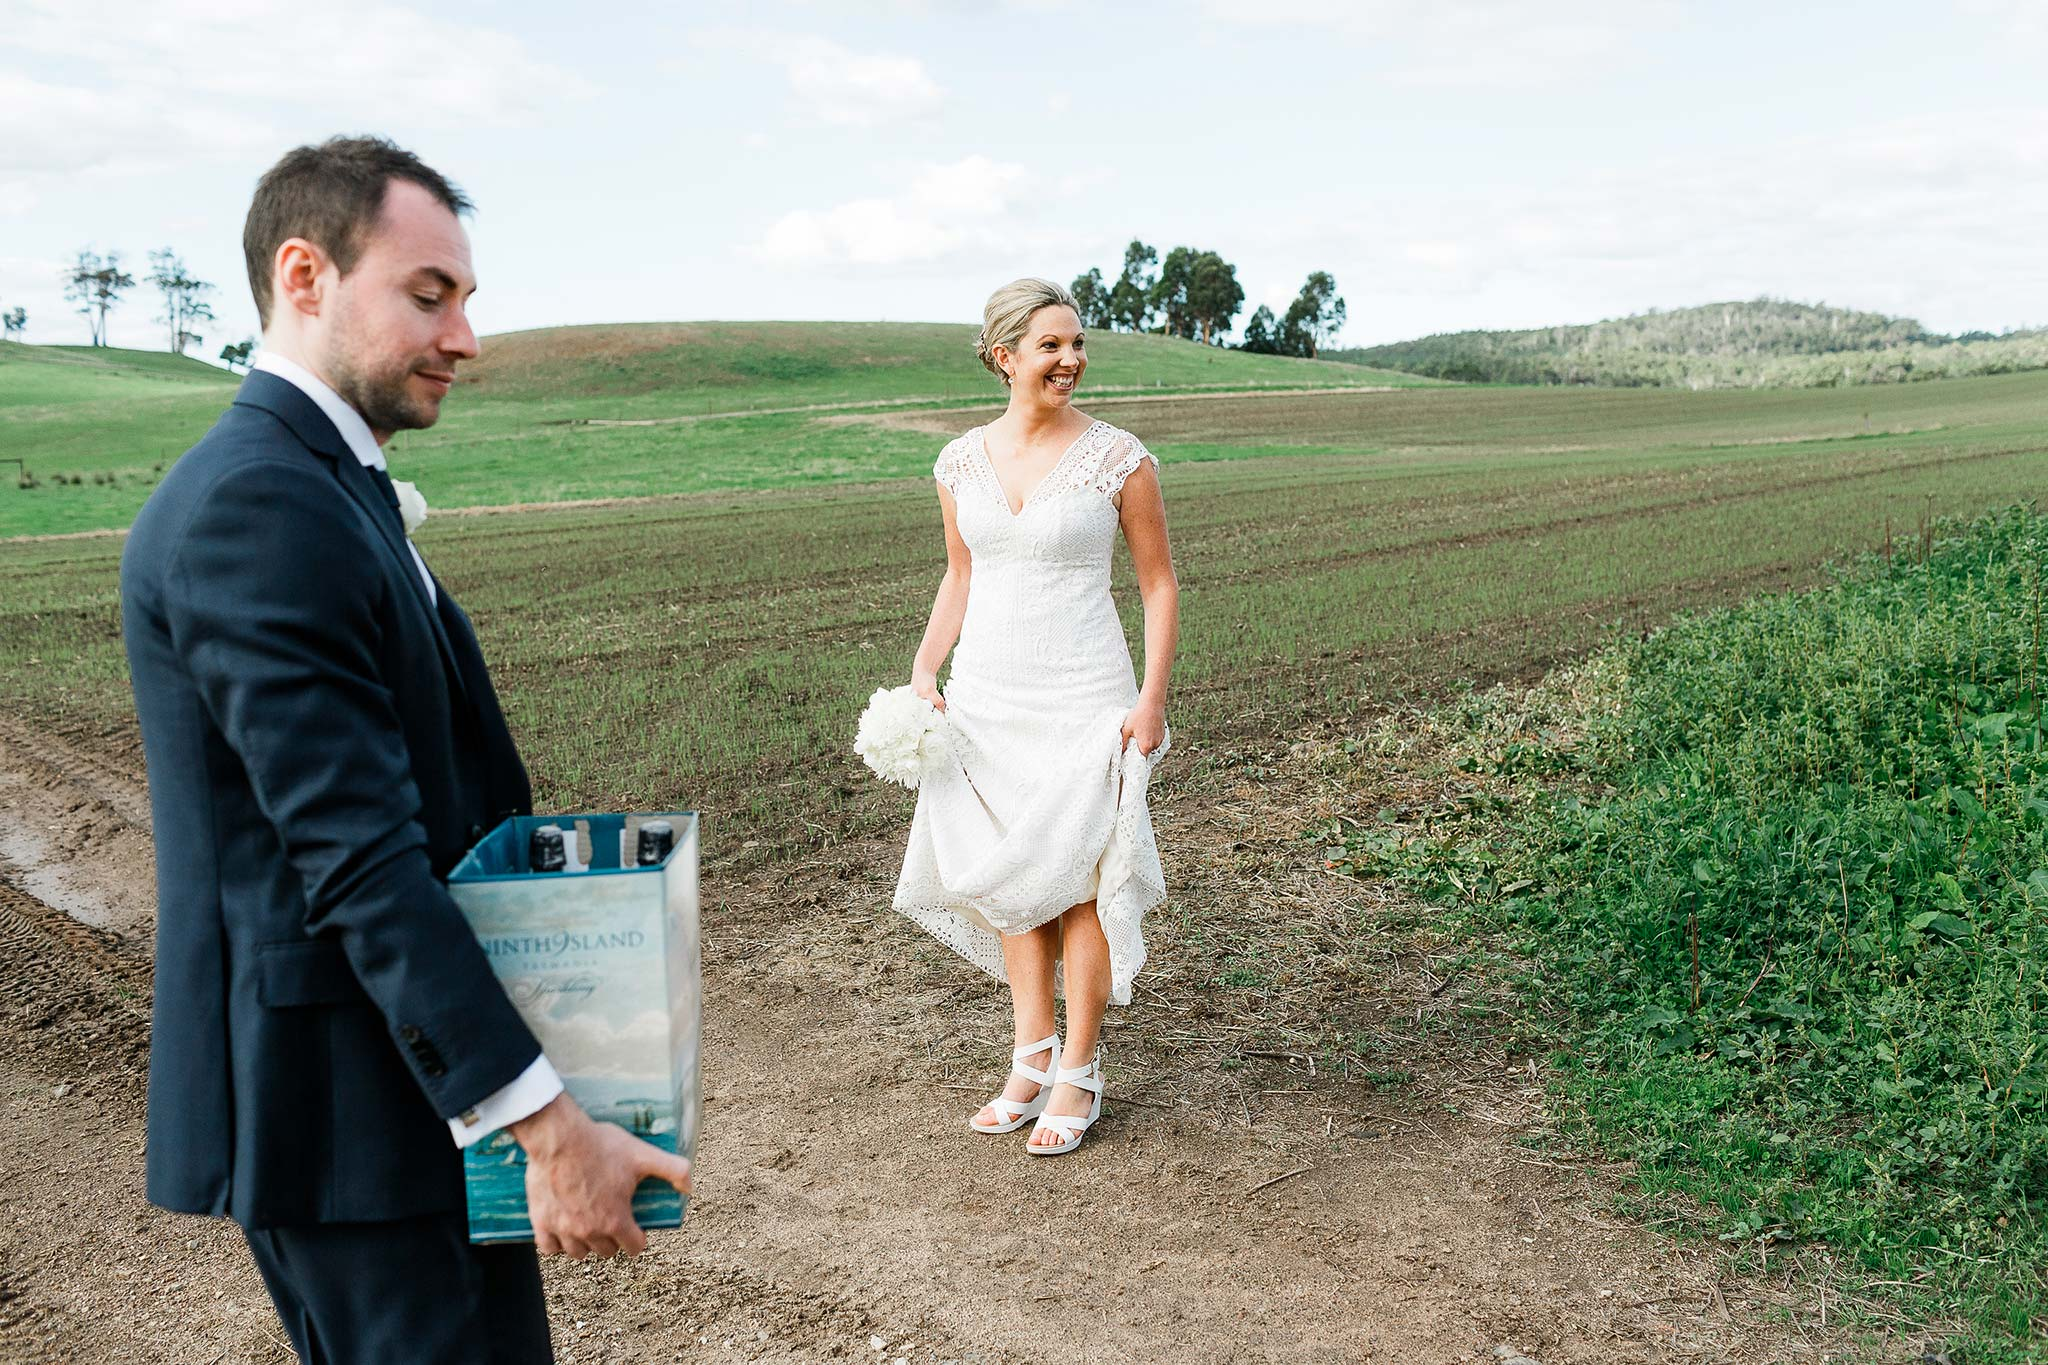 Tasmania-Davenport-Farm-Wedding-bride-beer